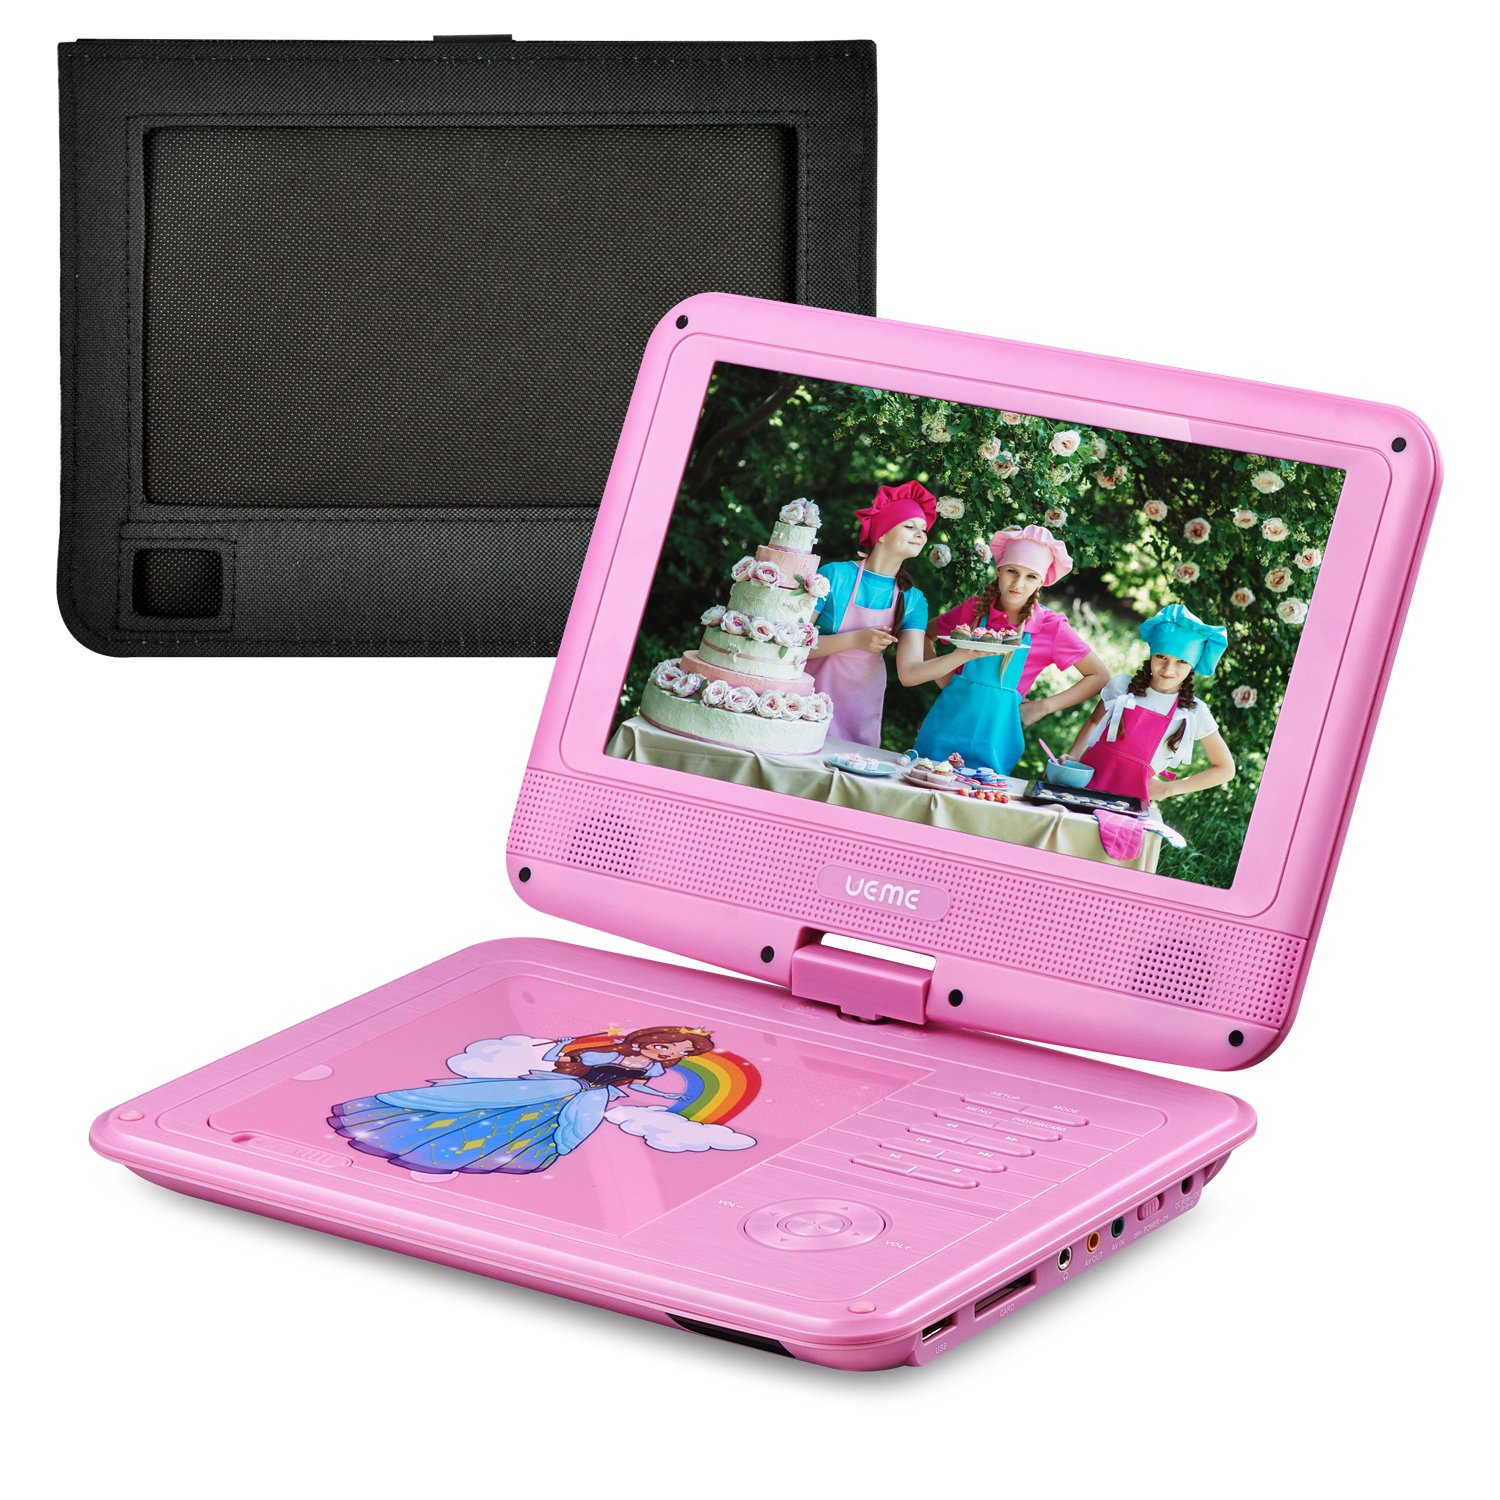 UEME 9'' Portable DVD Player with Swivel Screen, Car Headrest Mount Holder, Remote Control, SD Card Slot and USB Port, Personal DVD Player PD-0093 (Pink)